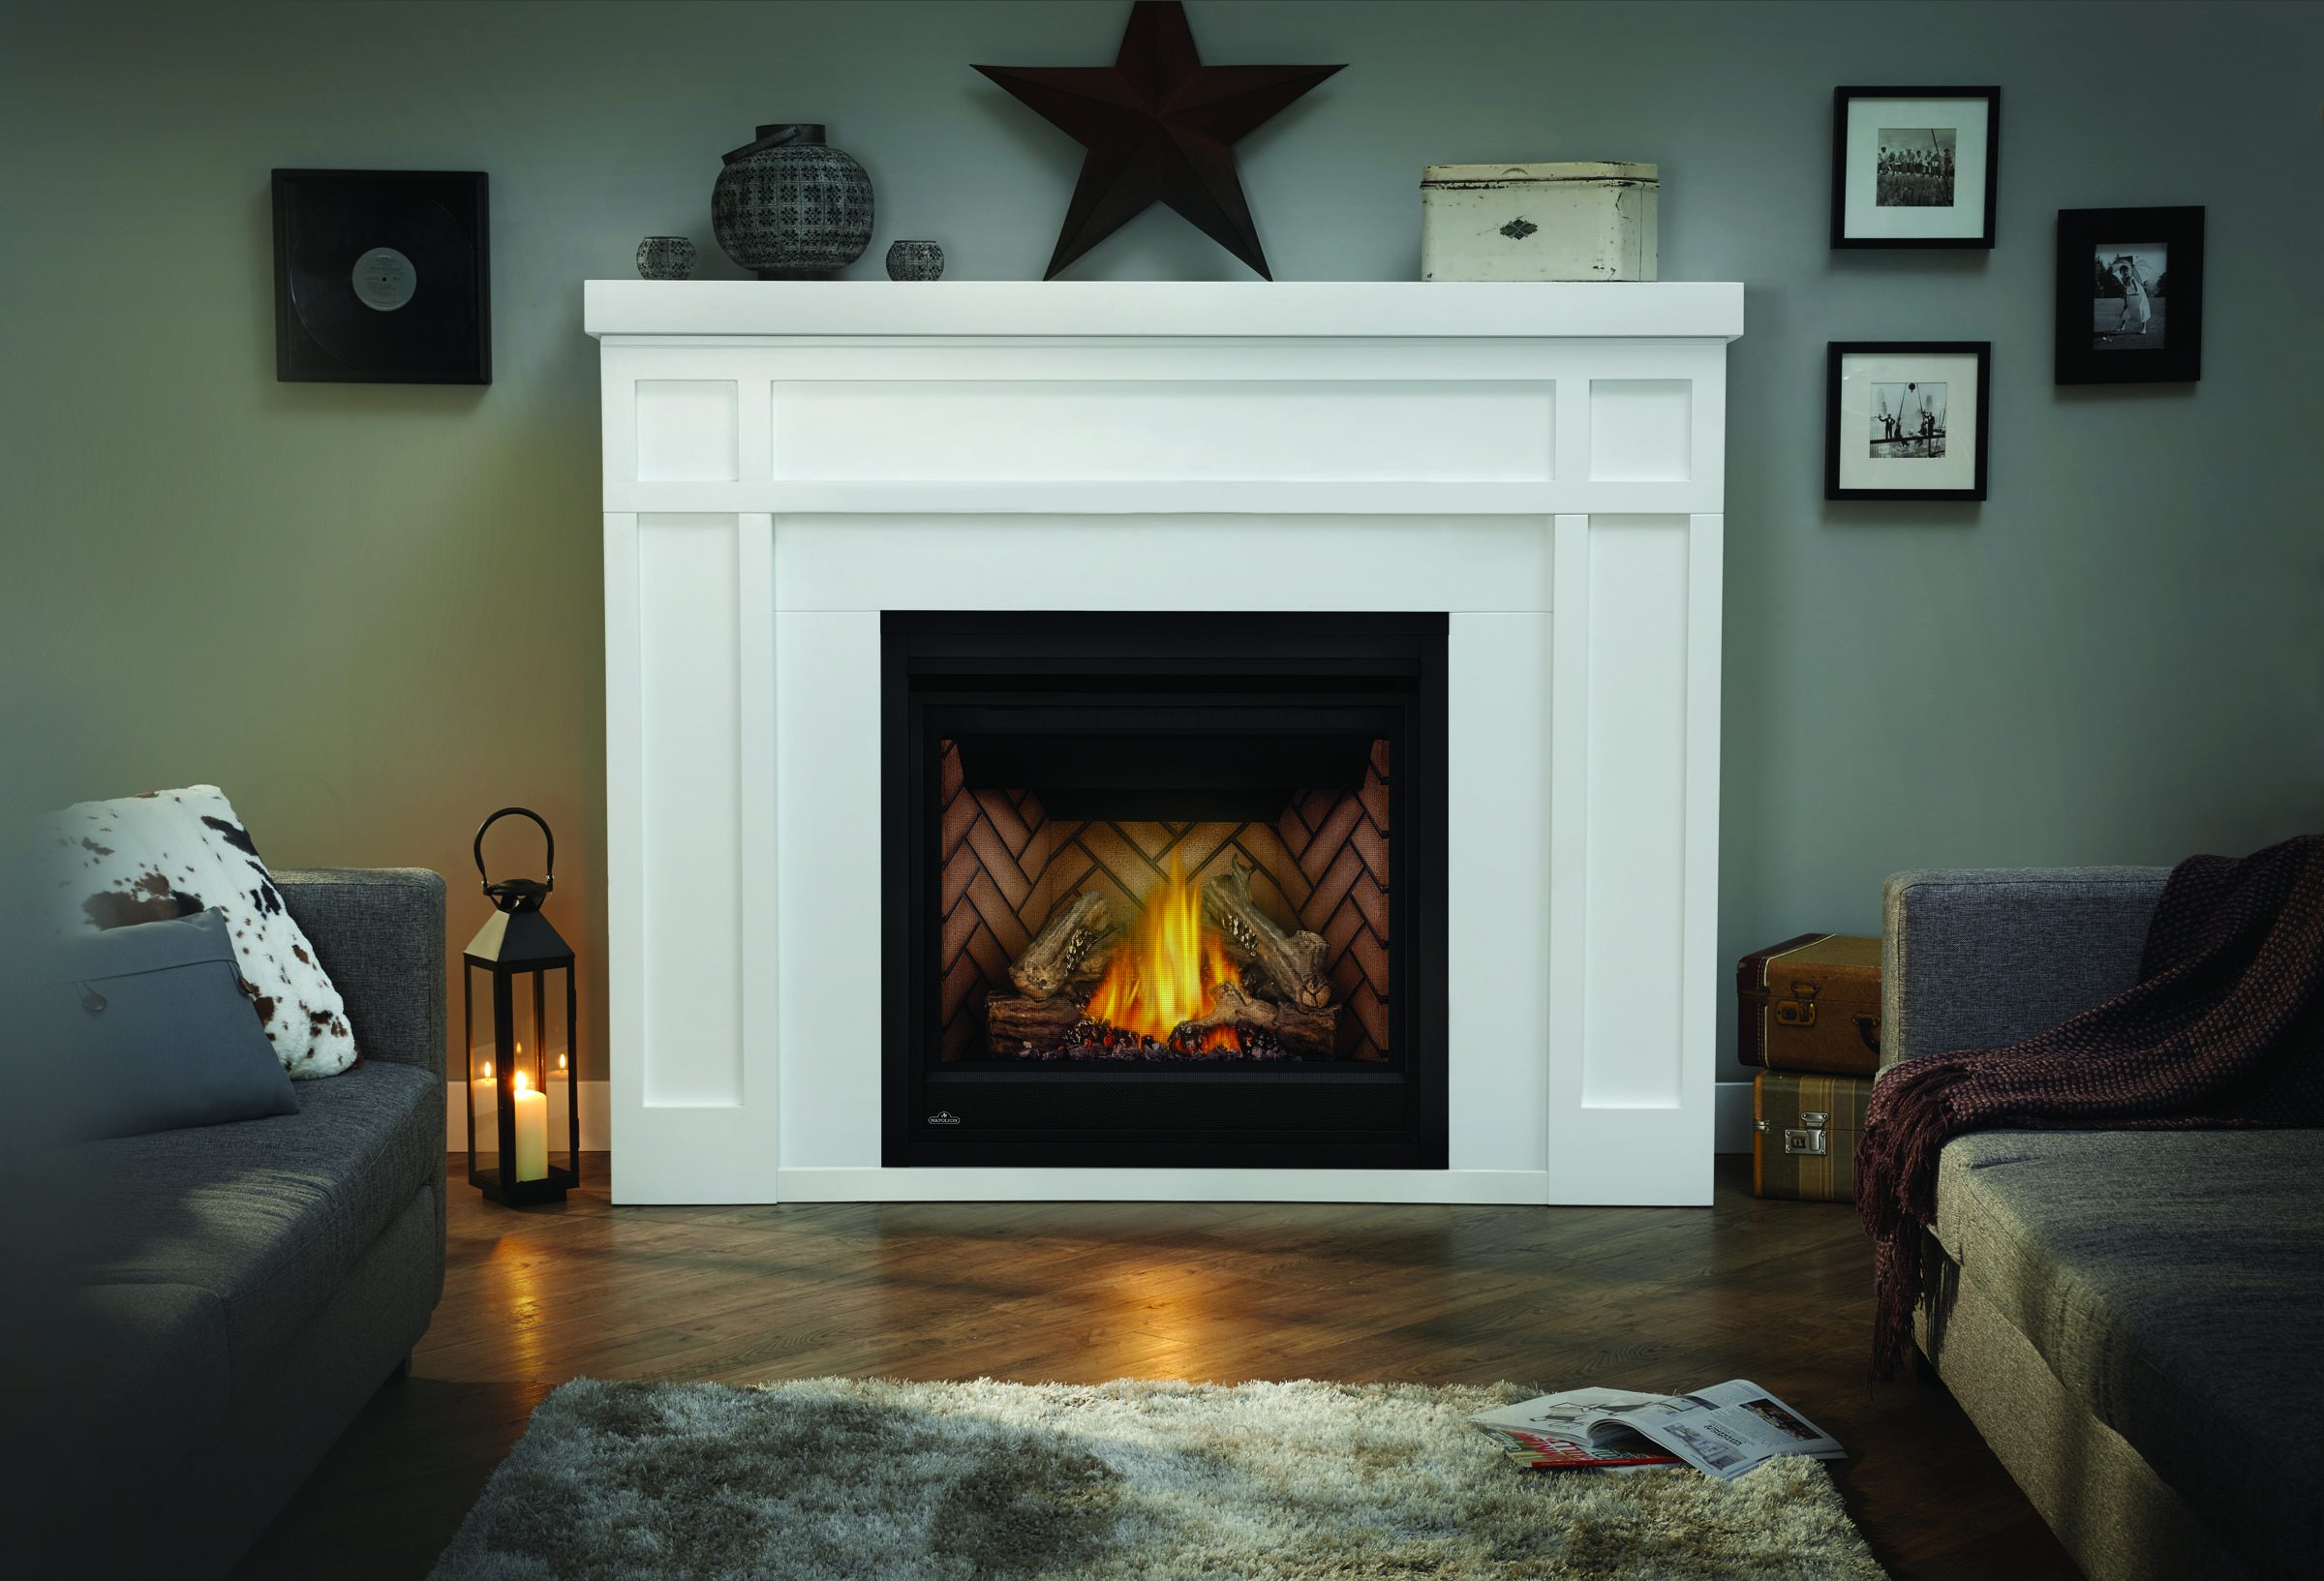 Napoleon Gas Fireplaces The Napoleon Ascent X 36 Gas Fireplace Enhances Ambiance In Any